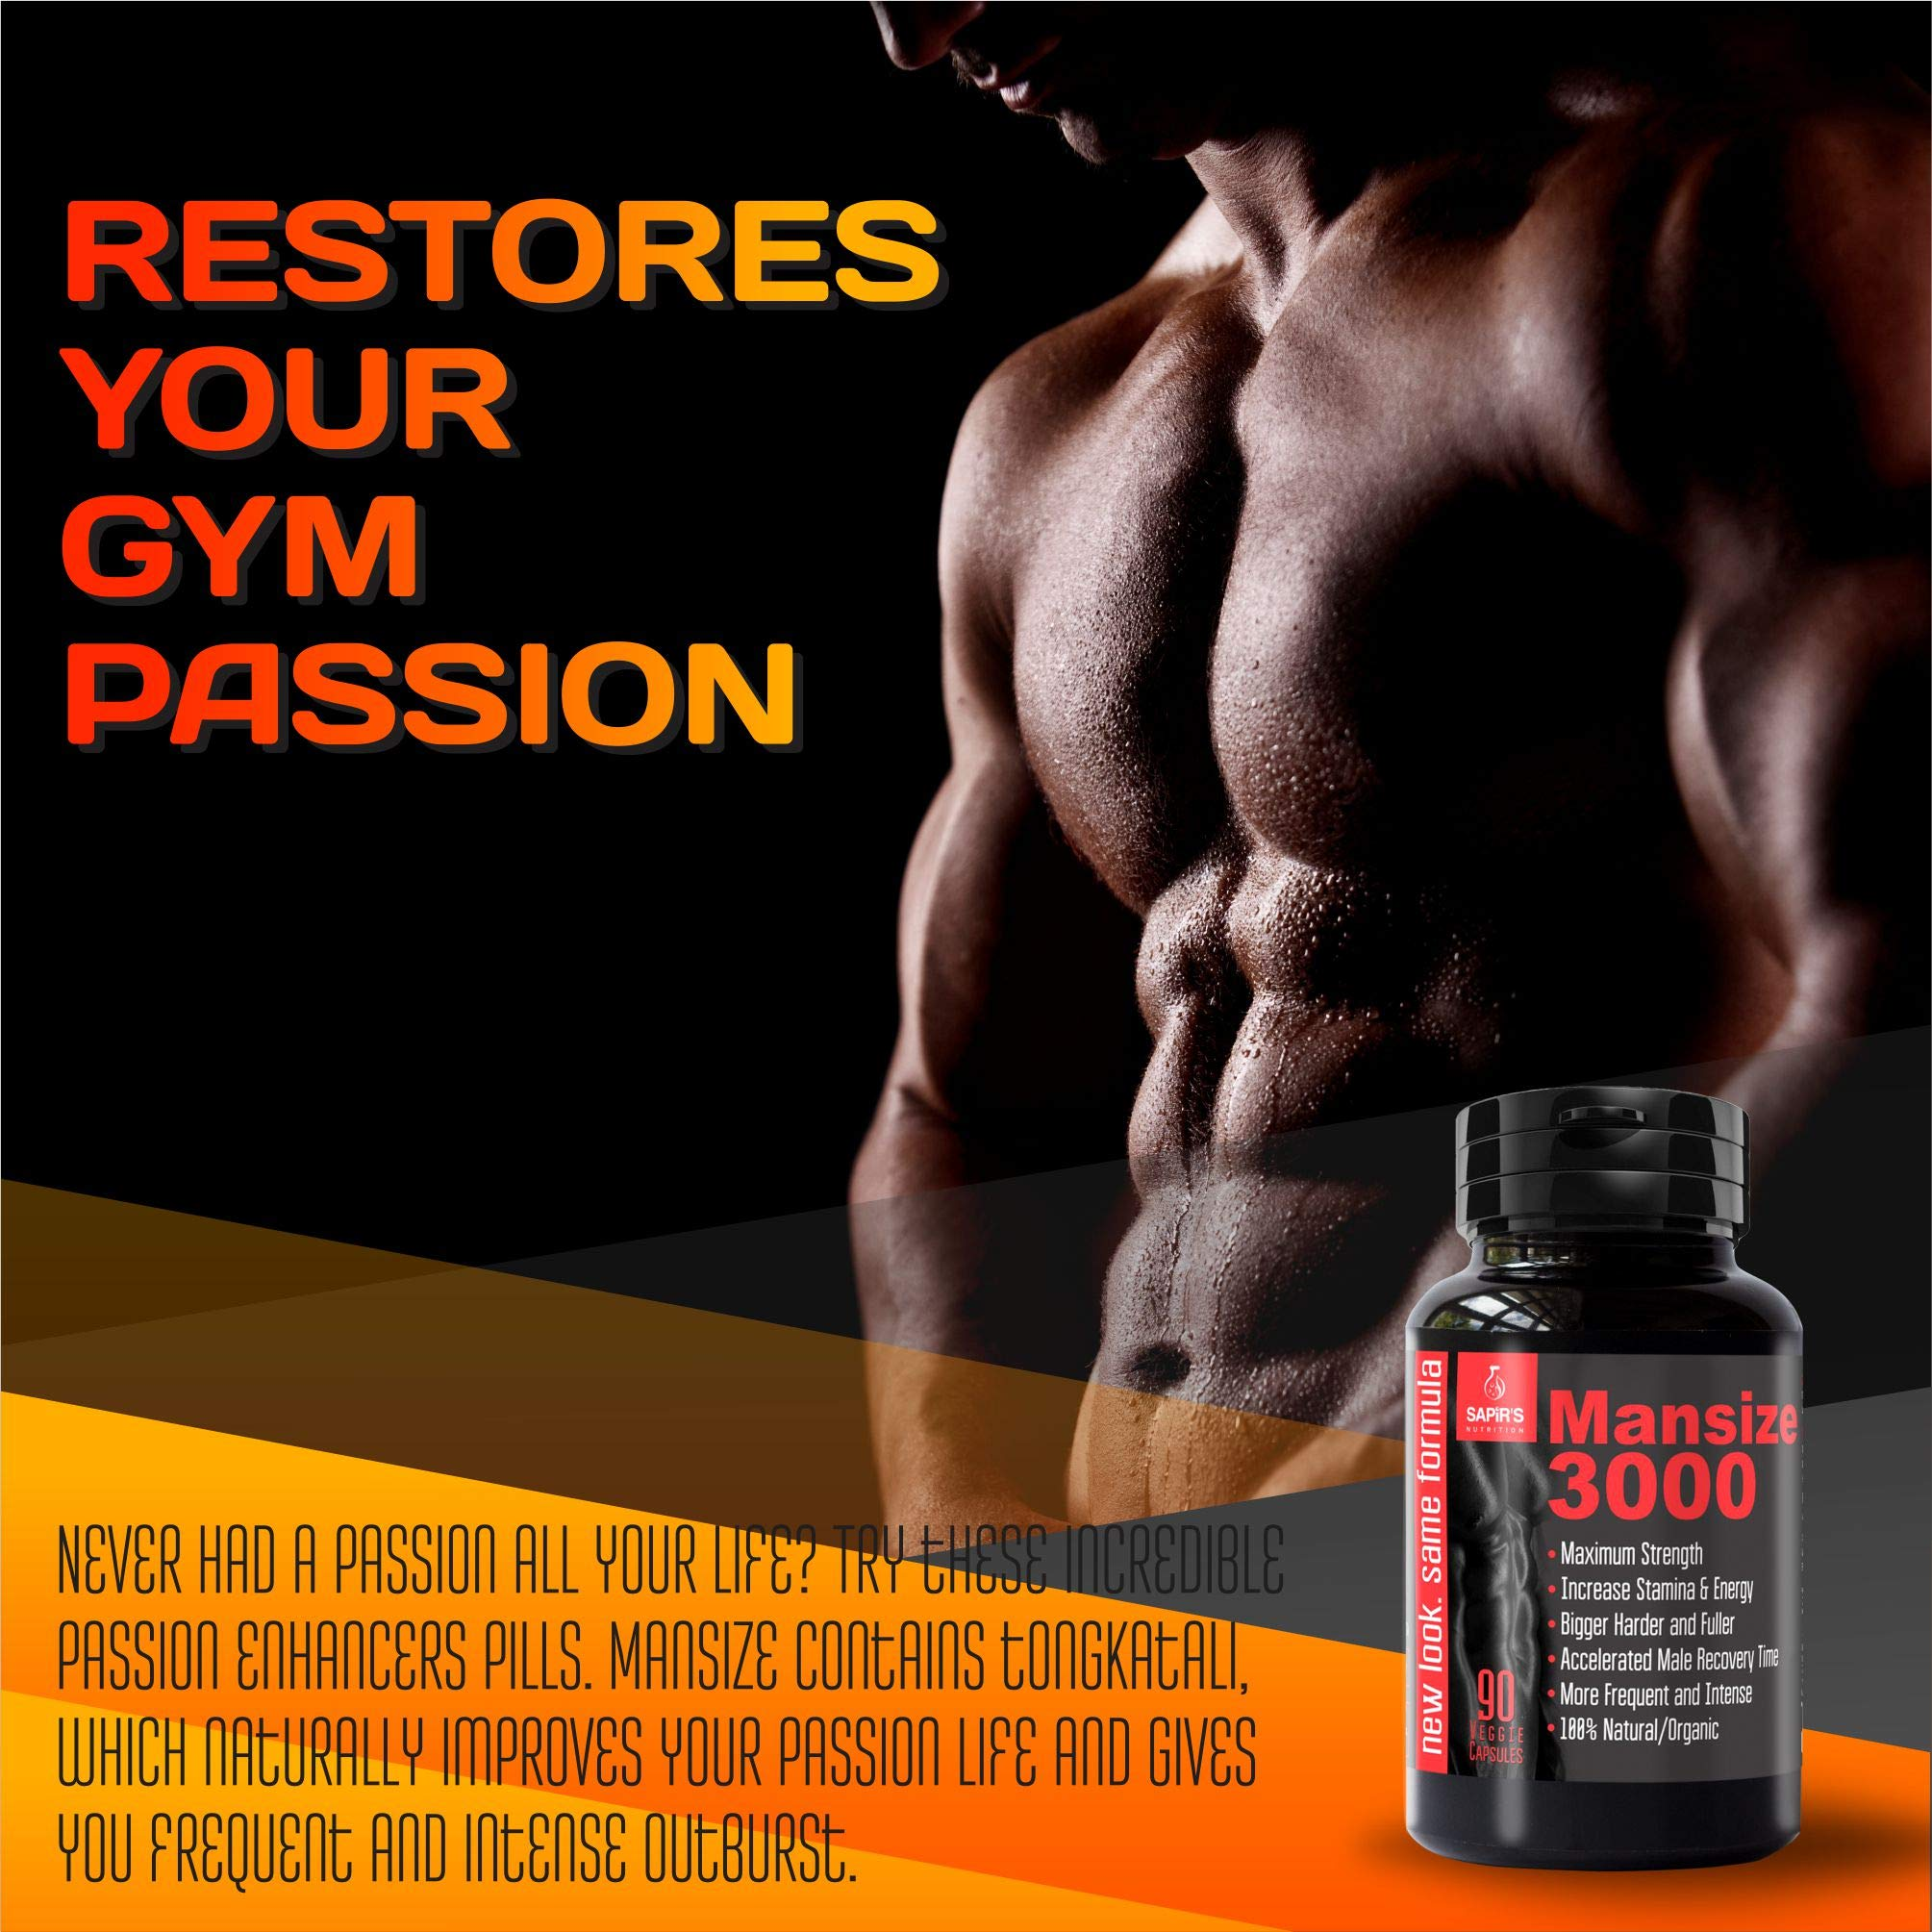 Mansize 3000 Male Enlarger XL 100% NATURAL Performance Amplification Supplement - Male Testosterone Booster, Stamina, Endurance, Strength Booster Male Growth Pills - Mood Enhancer 90 Veggie Capsules